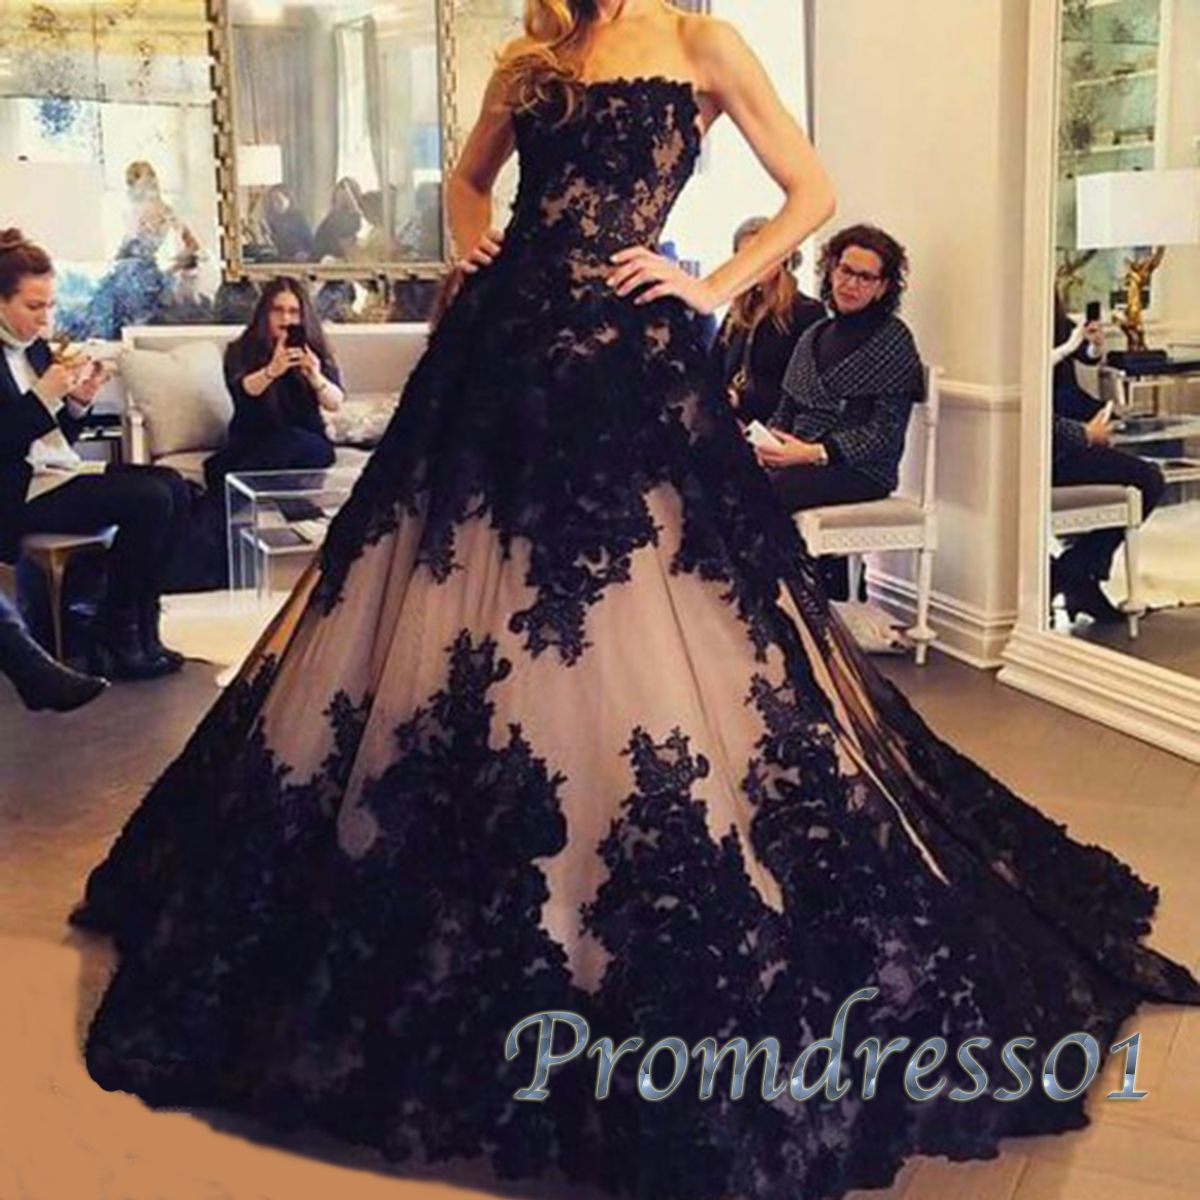 Pin by abegail dagan on gown pinterest black laces ball gowns